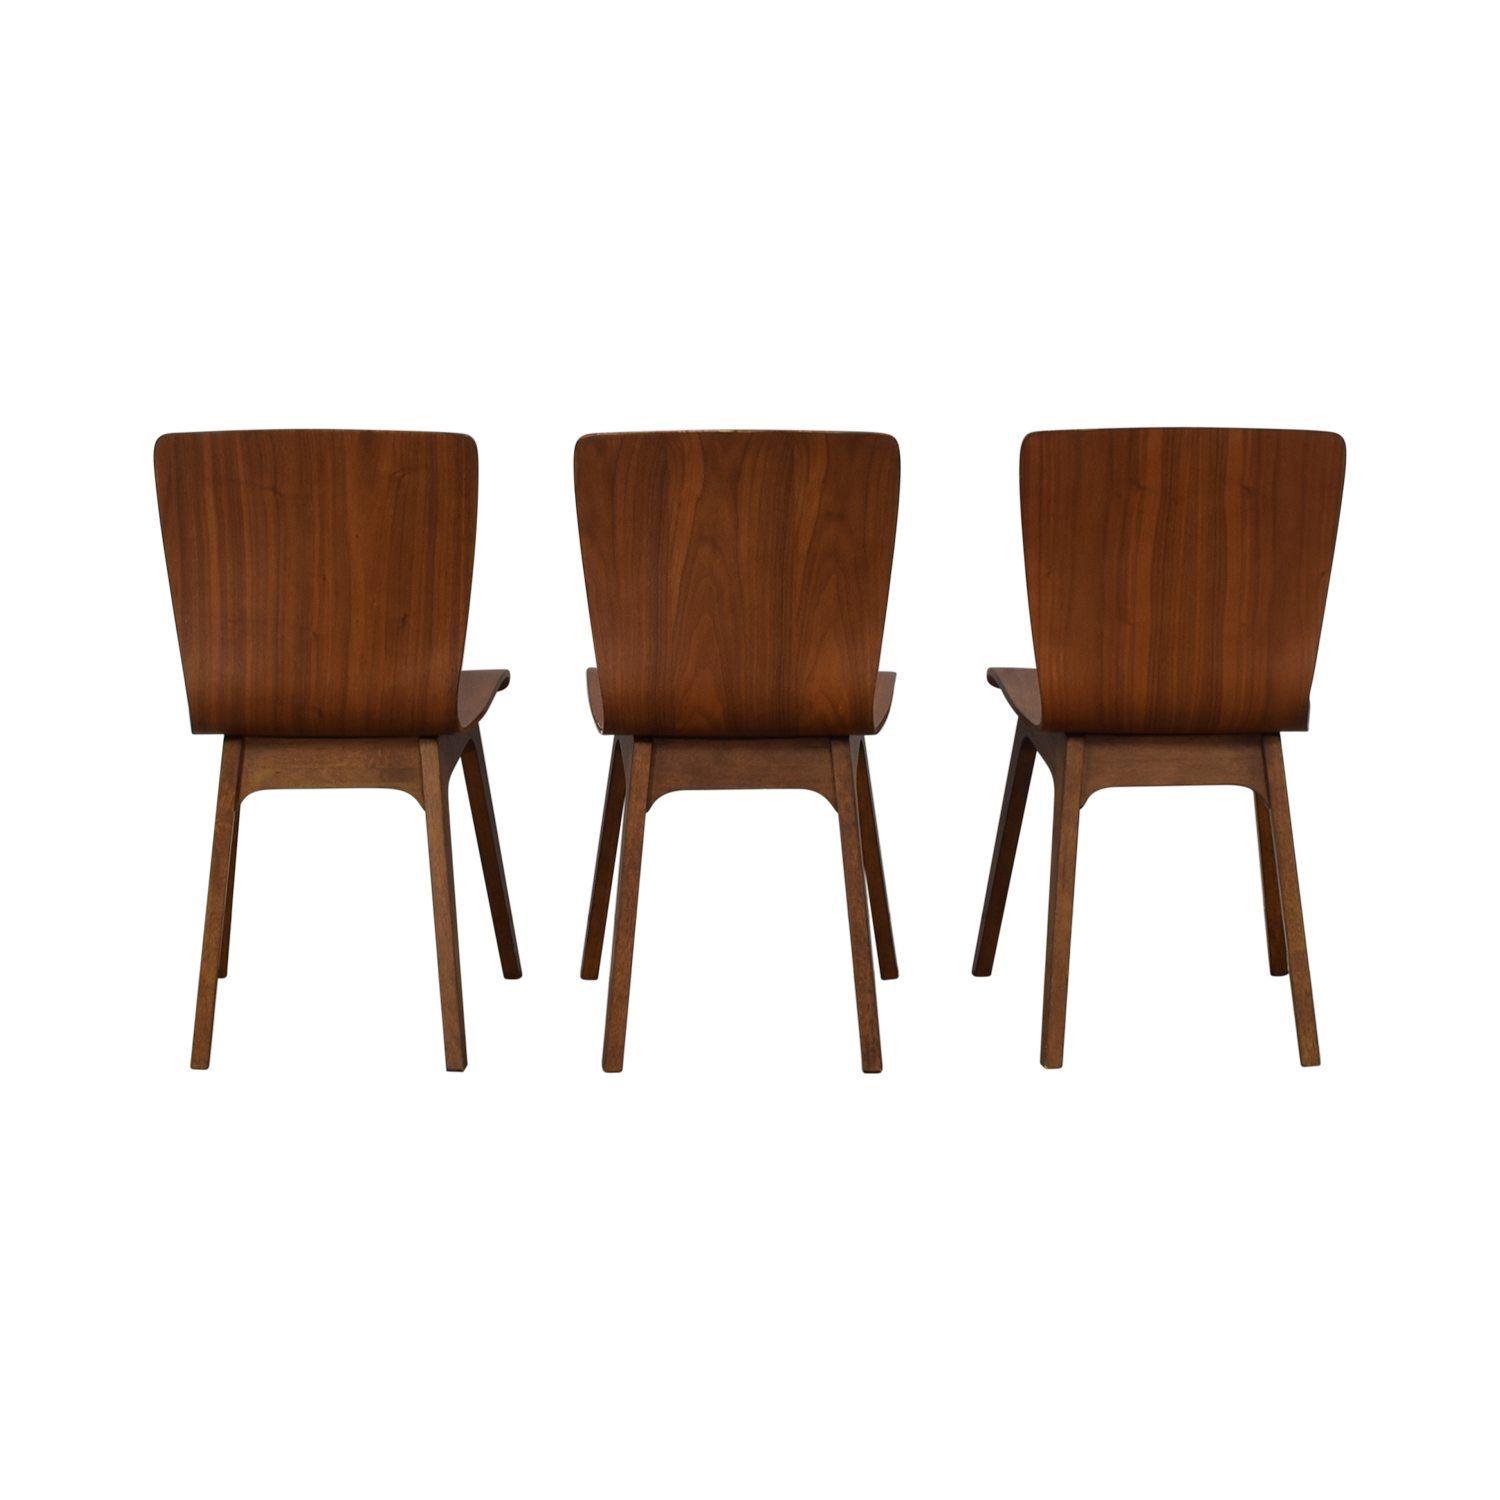 West Elm West Elm Crest Bentwood Dining Chairs coupon